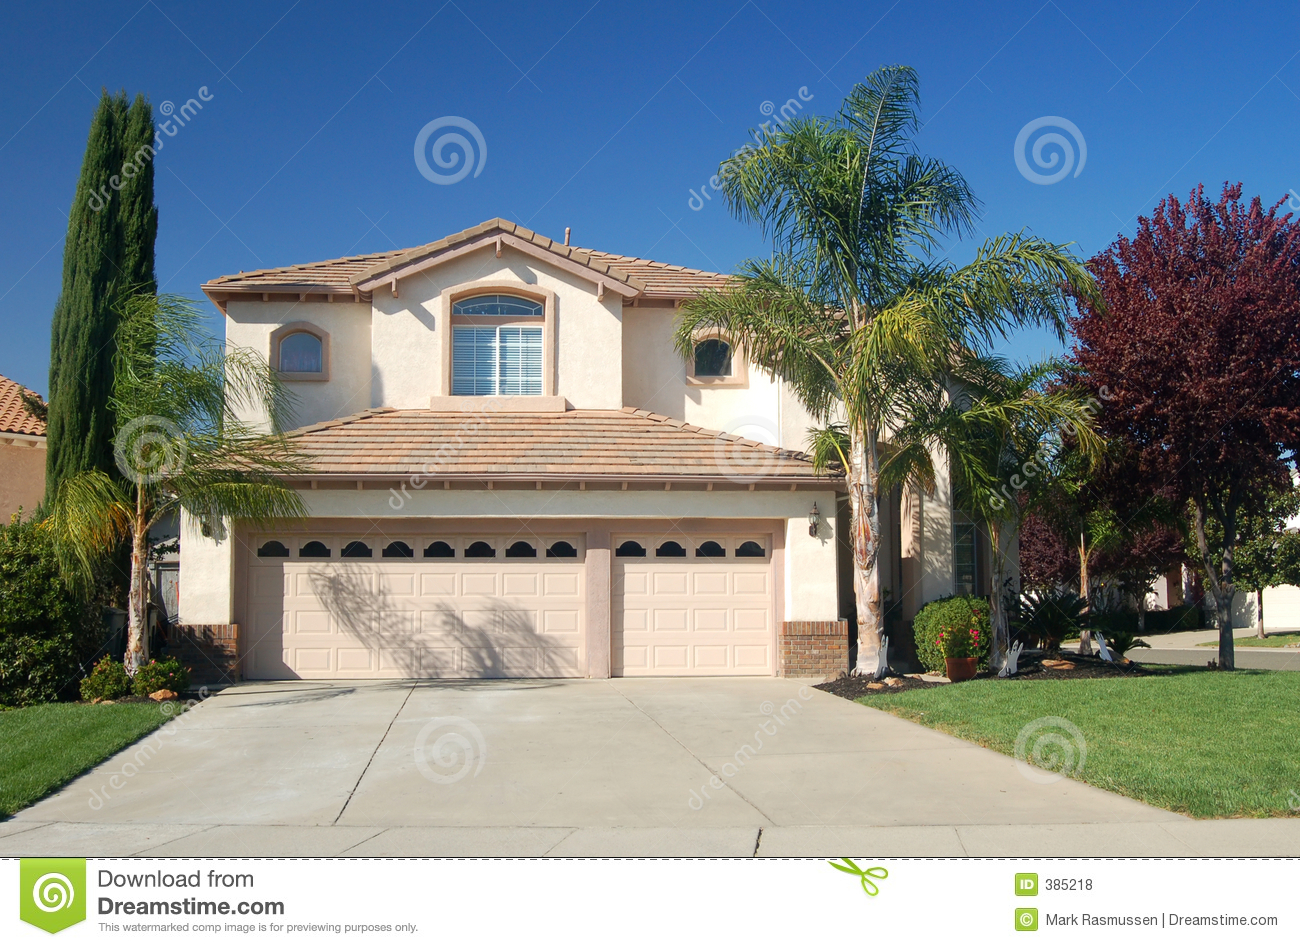 Nice house in california stock photo image of nice for Nice house photo